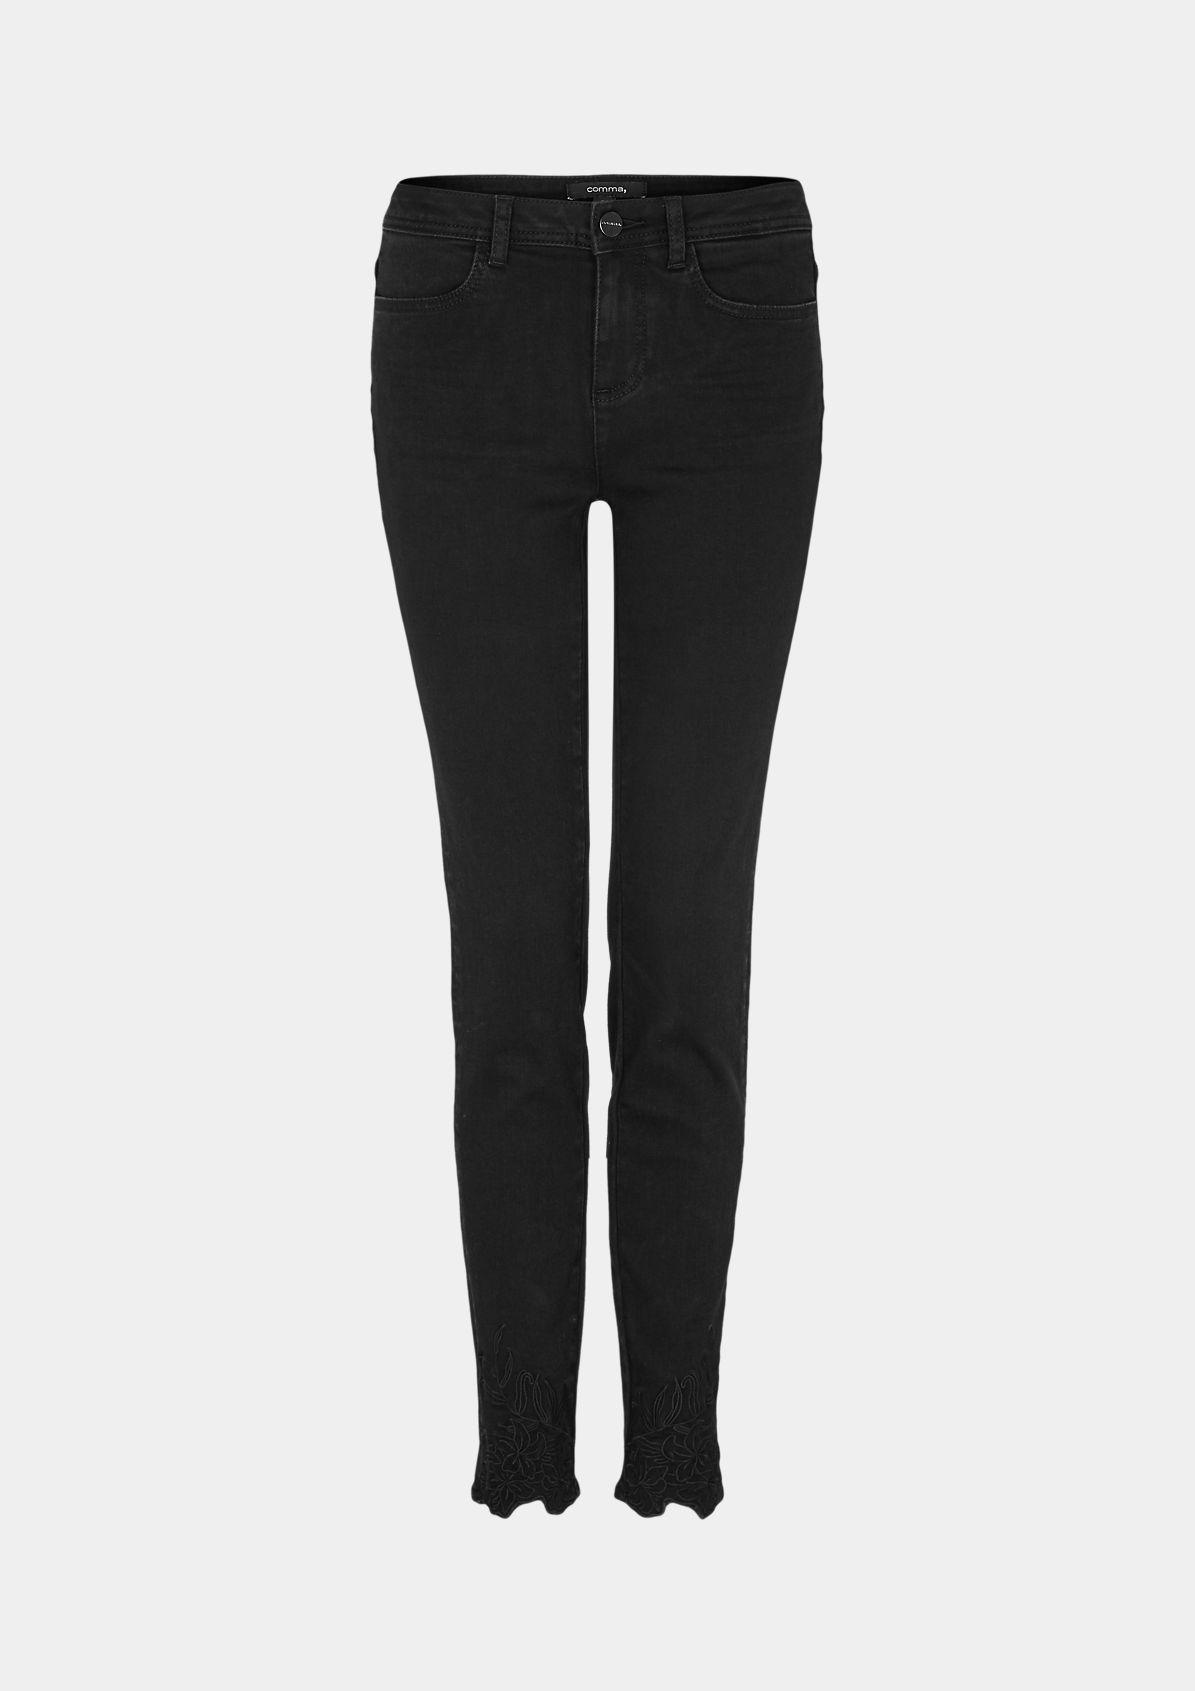 Black-Denim Jeans mit Stickereien